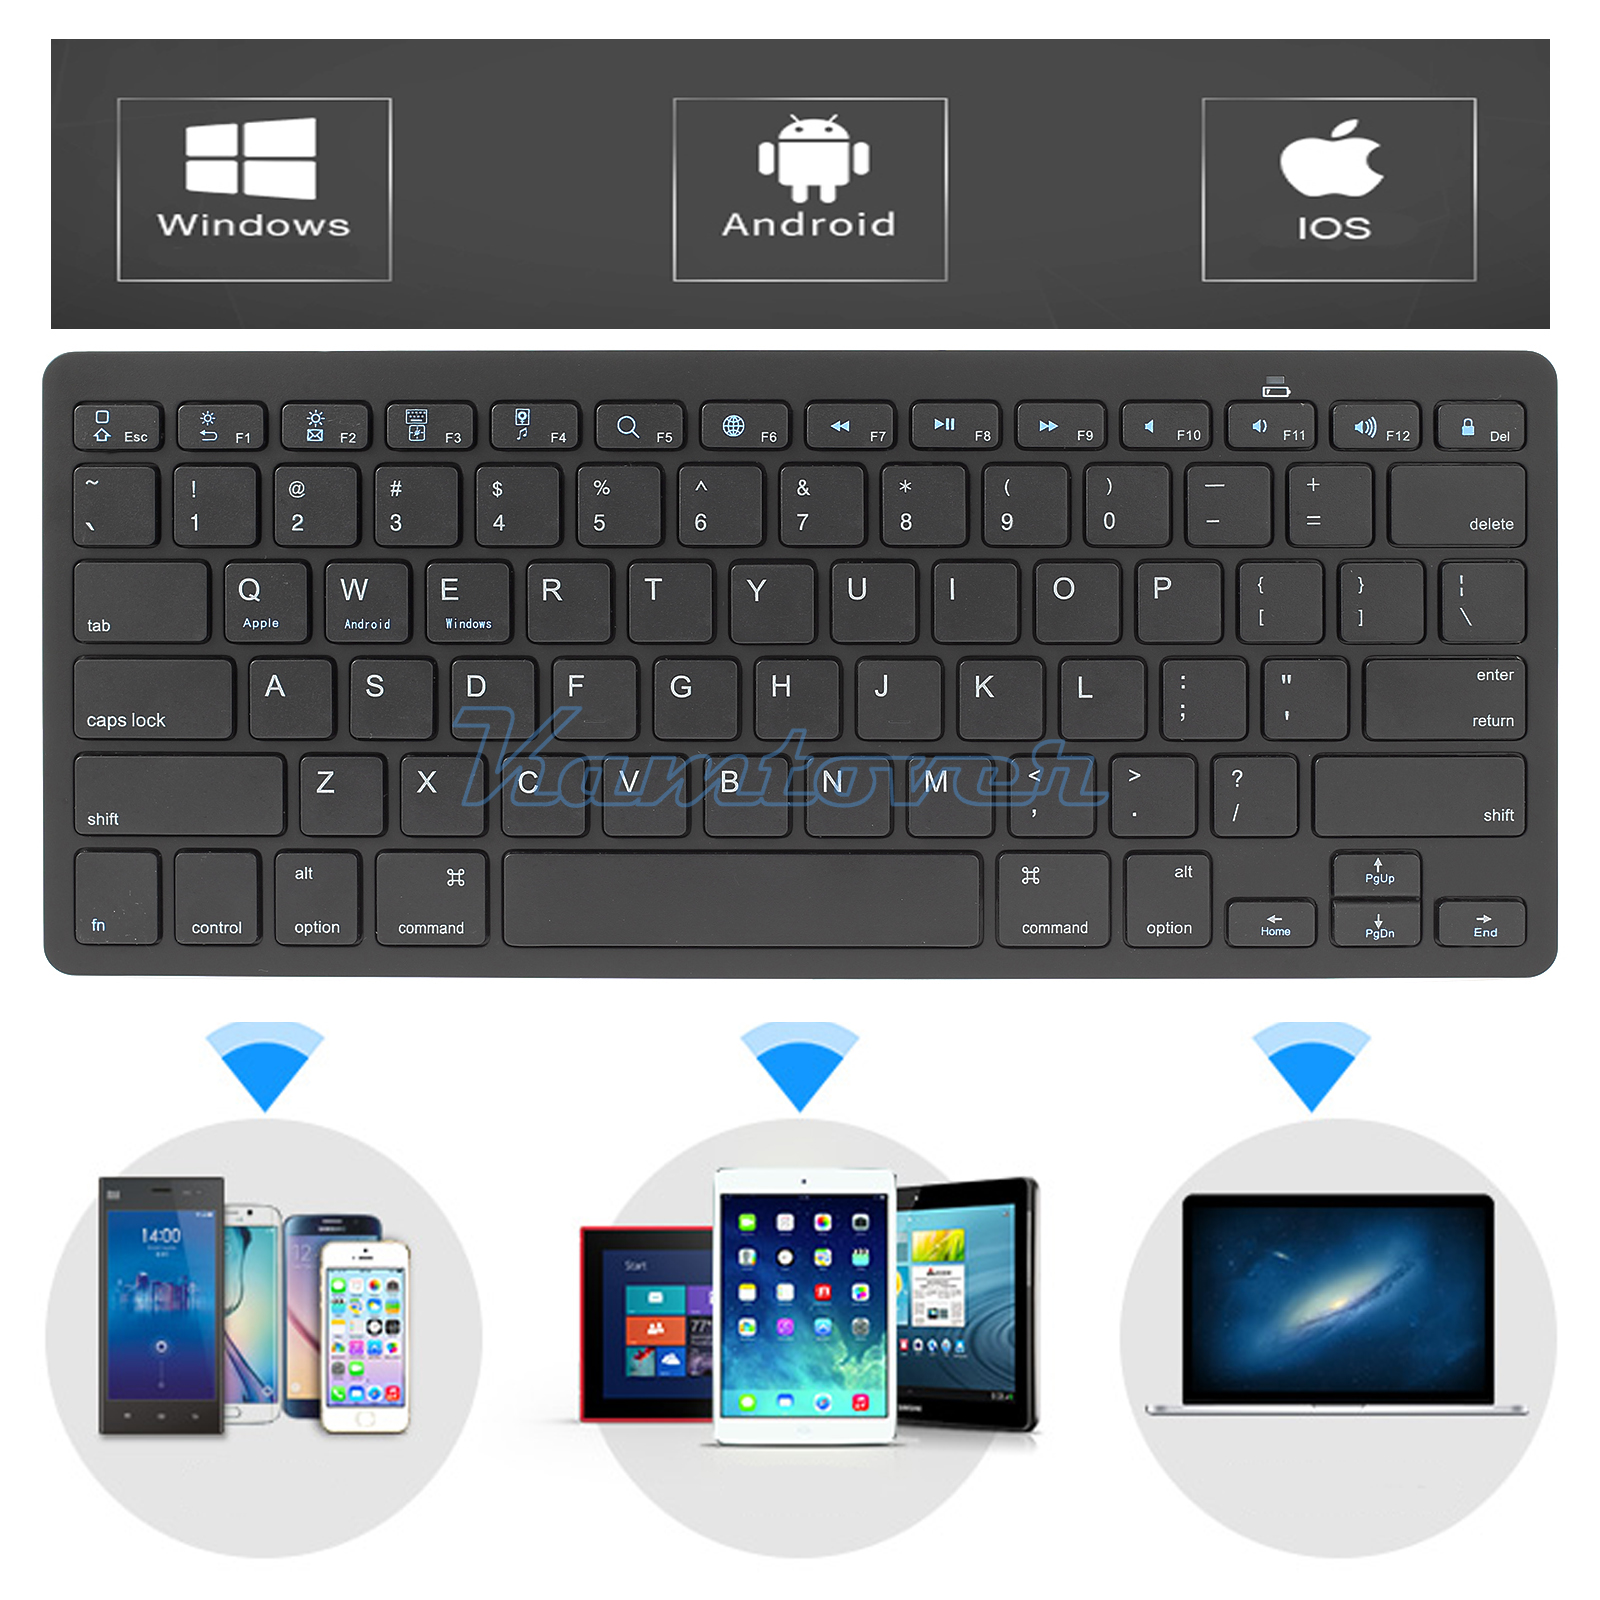 Android Bluetooth Keyboard Example: Ultra-slim Wireless Keyboard Bluetooth Lightweight For IOS Android Mac Windows